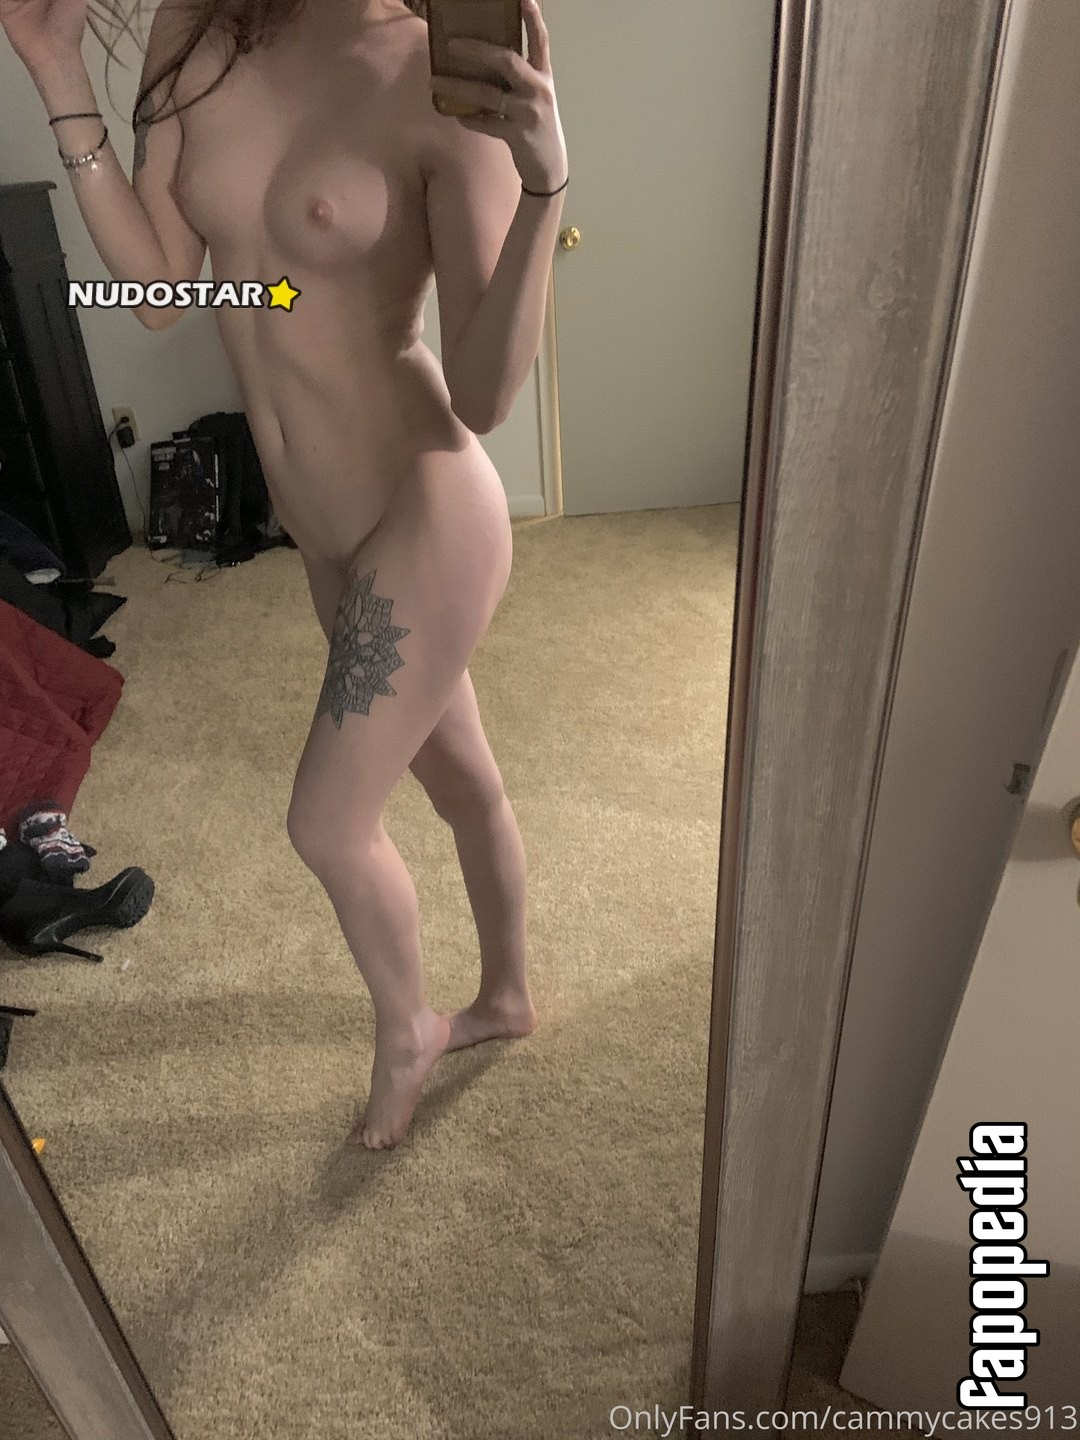 Cammycakes913 Nude OnlyFans Leaks